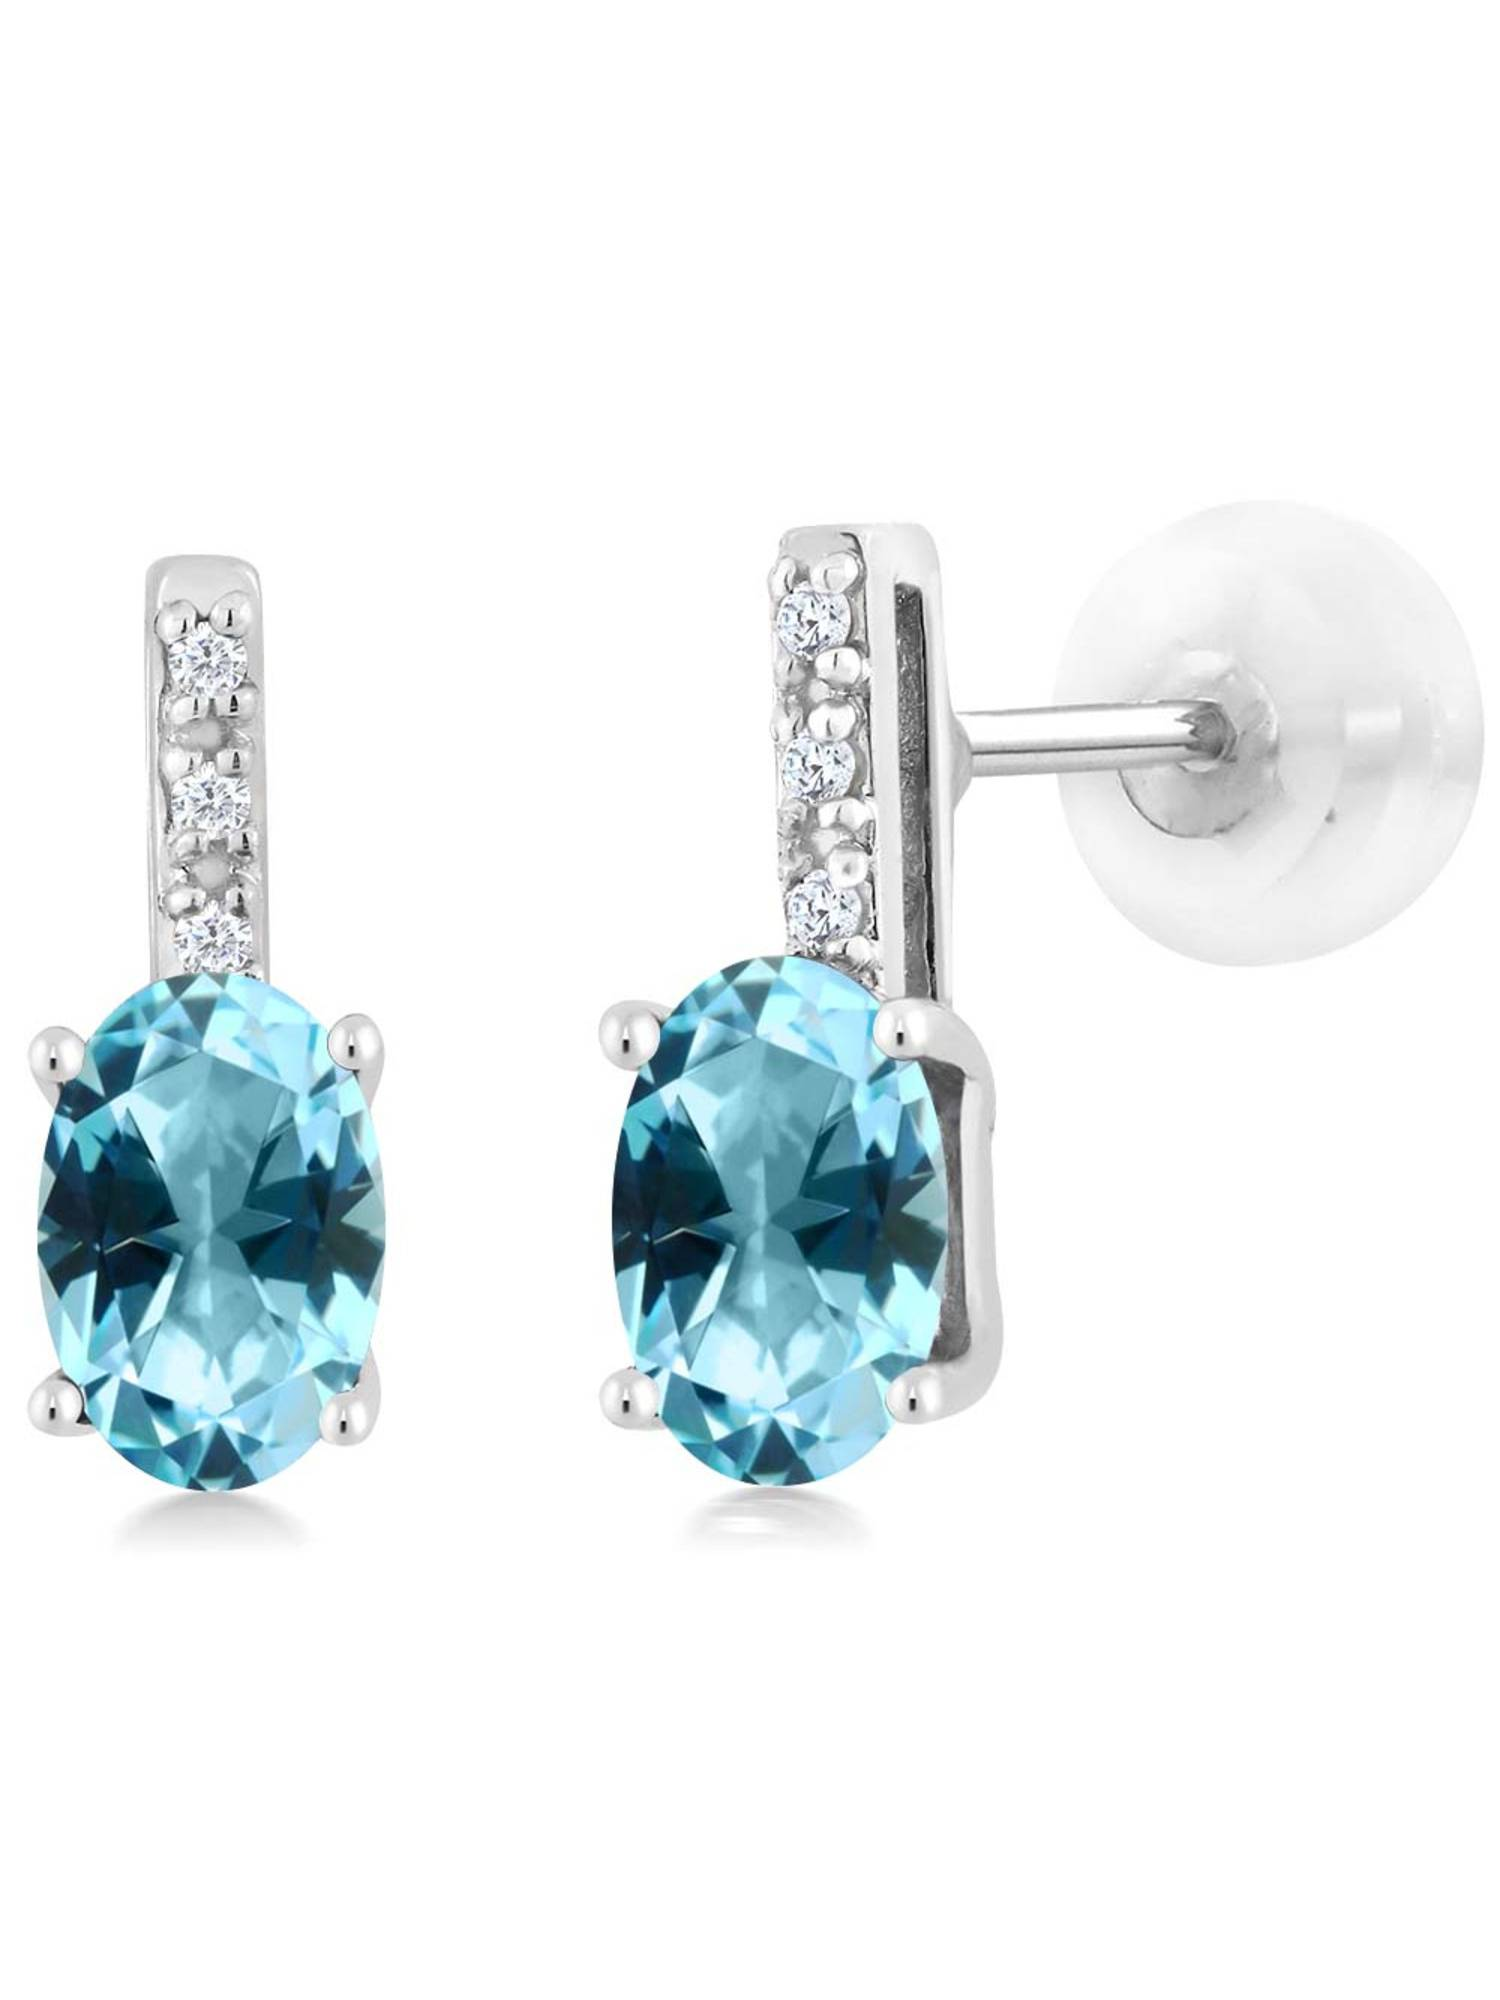 14K White Gold Diamond Earrings Set with Oval Ice Blue Topaz from Swarovski by